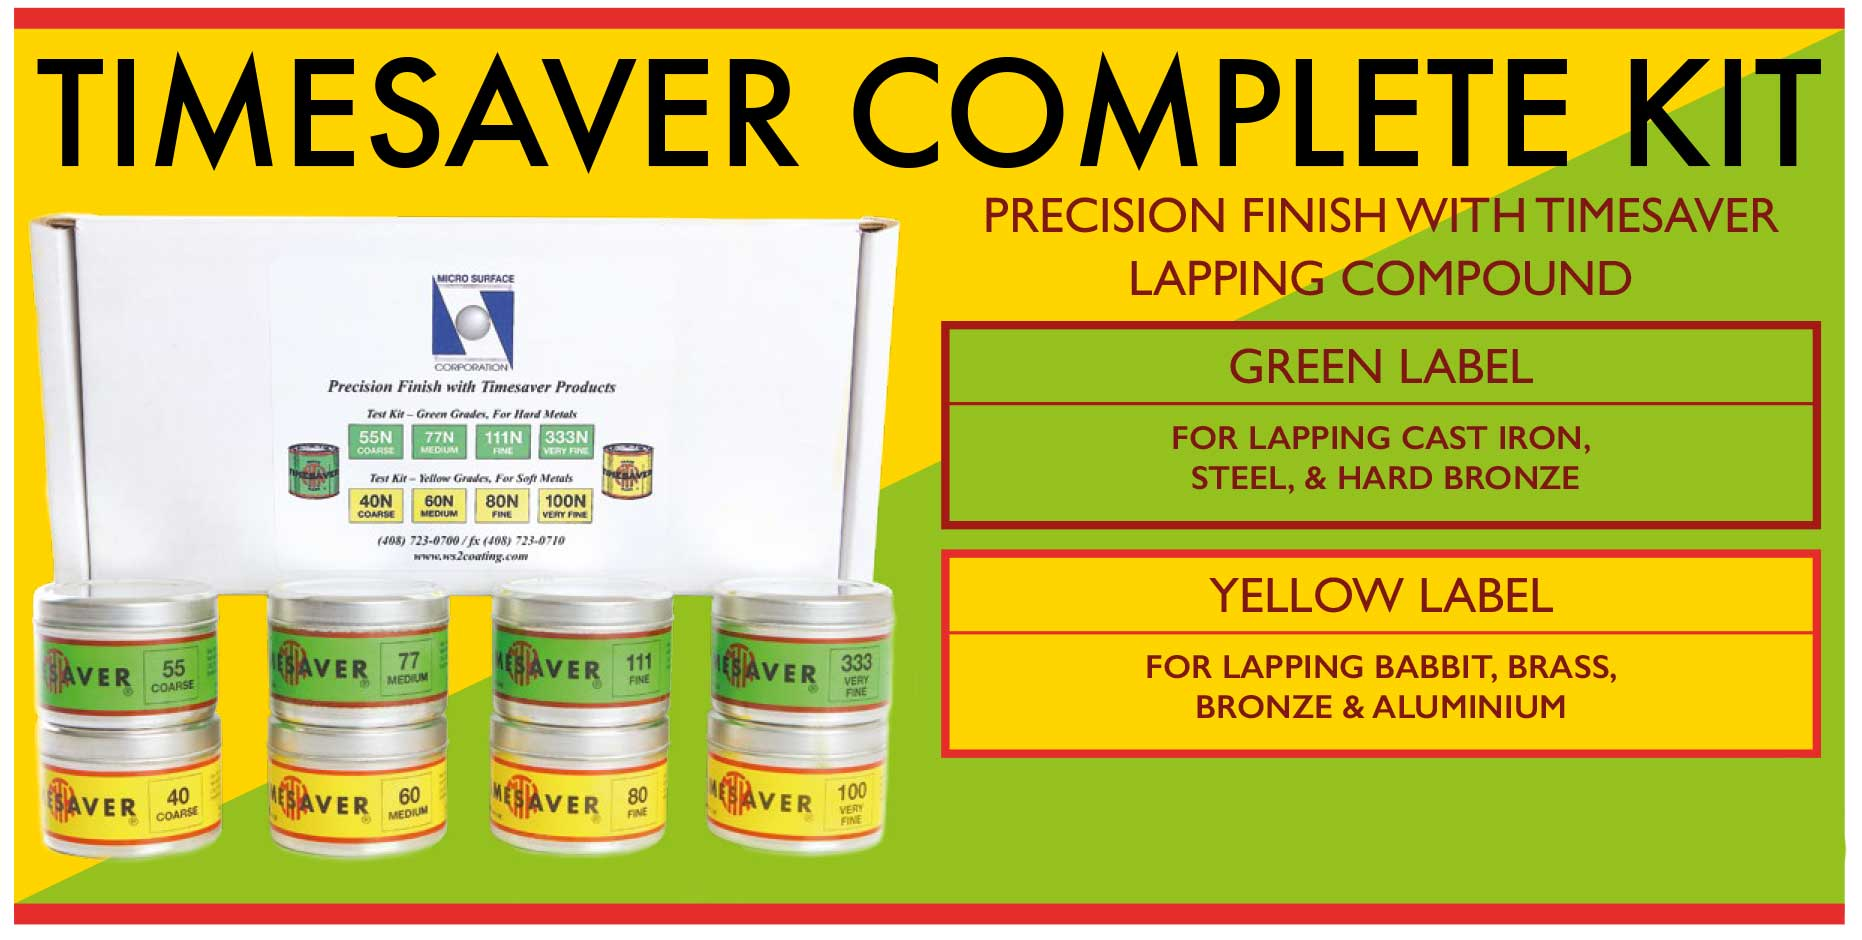 TIMESAVER COMPLETE KIT